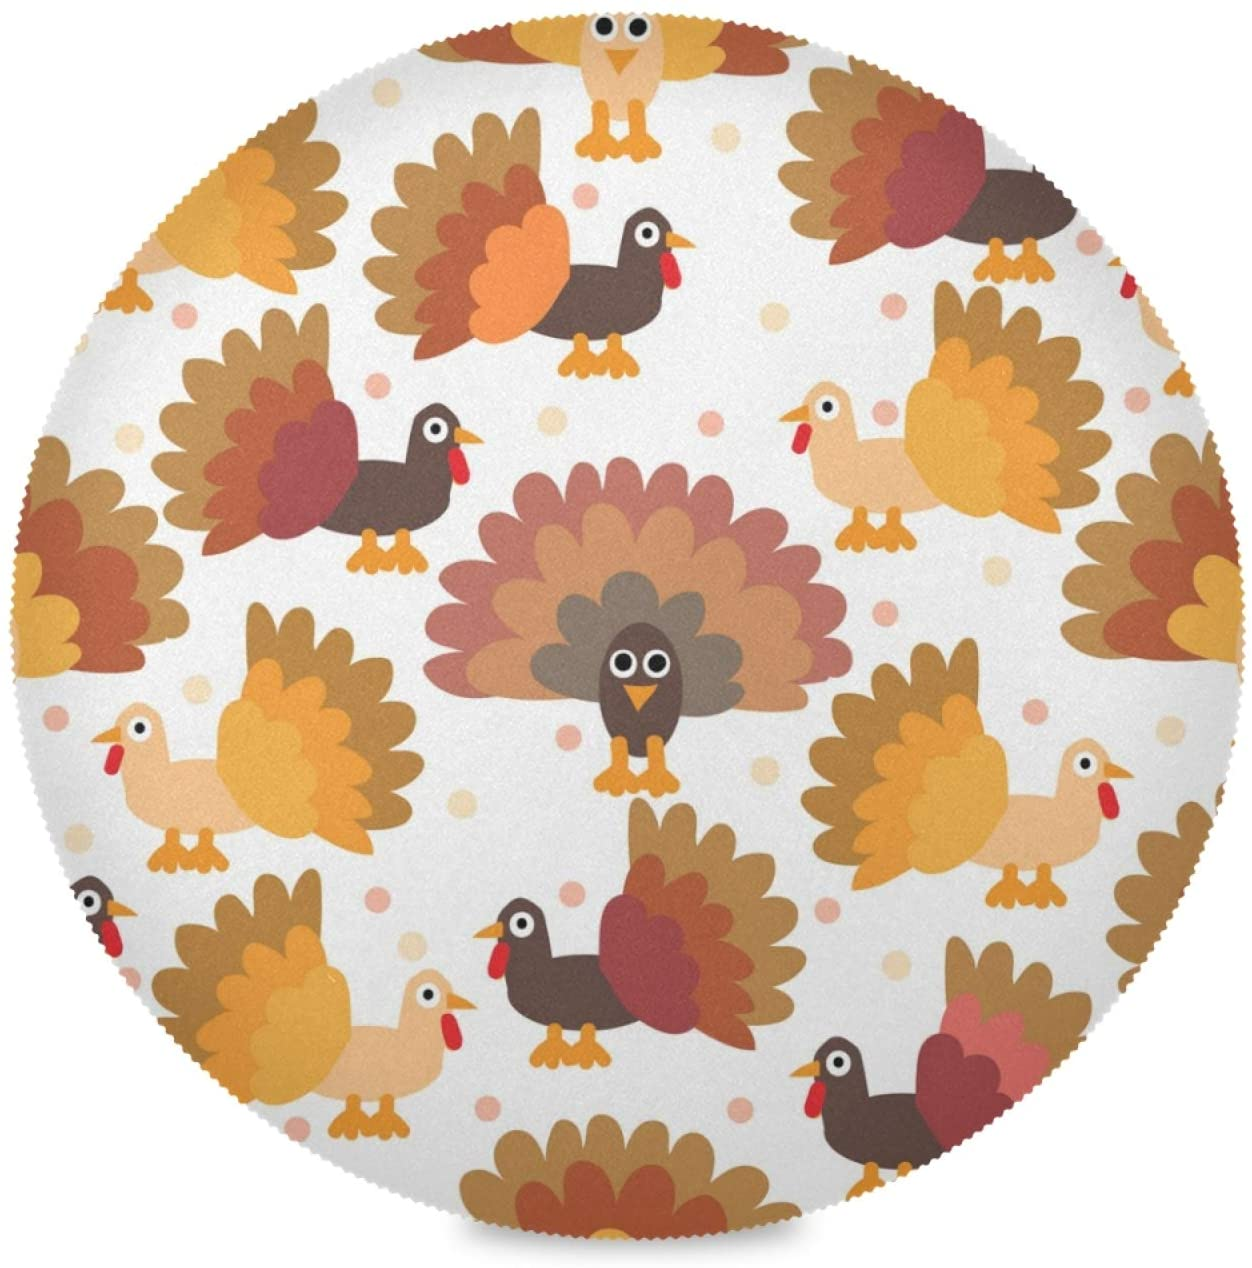 Qilmy Happy Thanksgiving Turkey Placemats Round Table Mats, Non-Slip Washable Heat Resistant Waterproof Placemat for Home Kitchen Coffee Table Decoration 4PCS